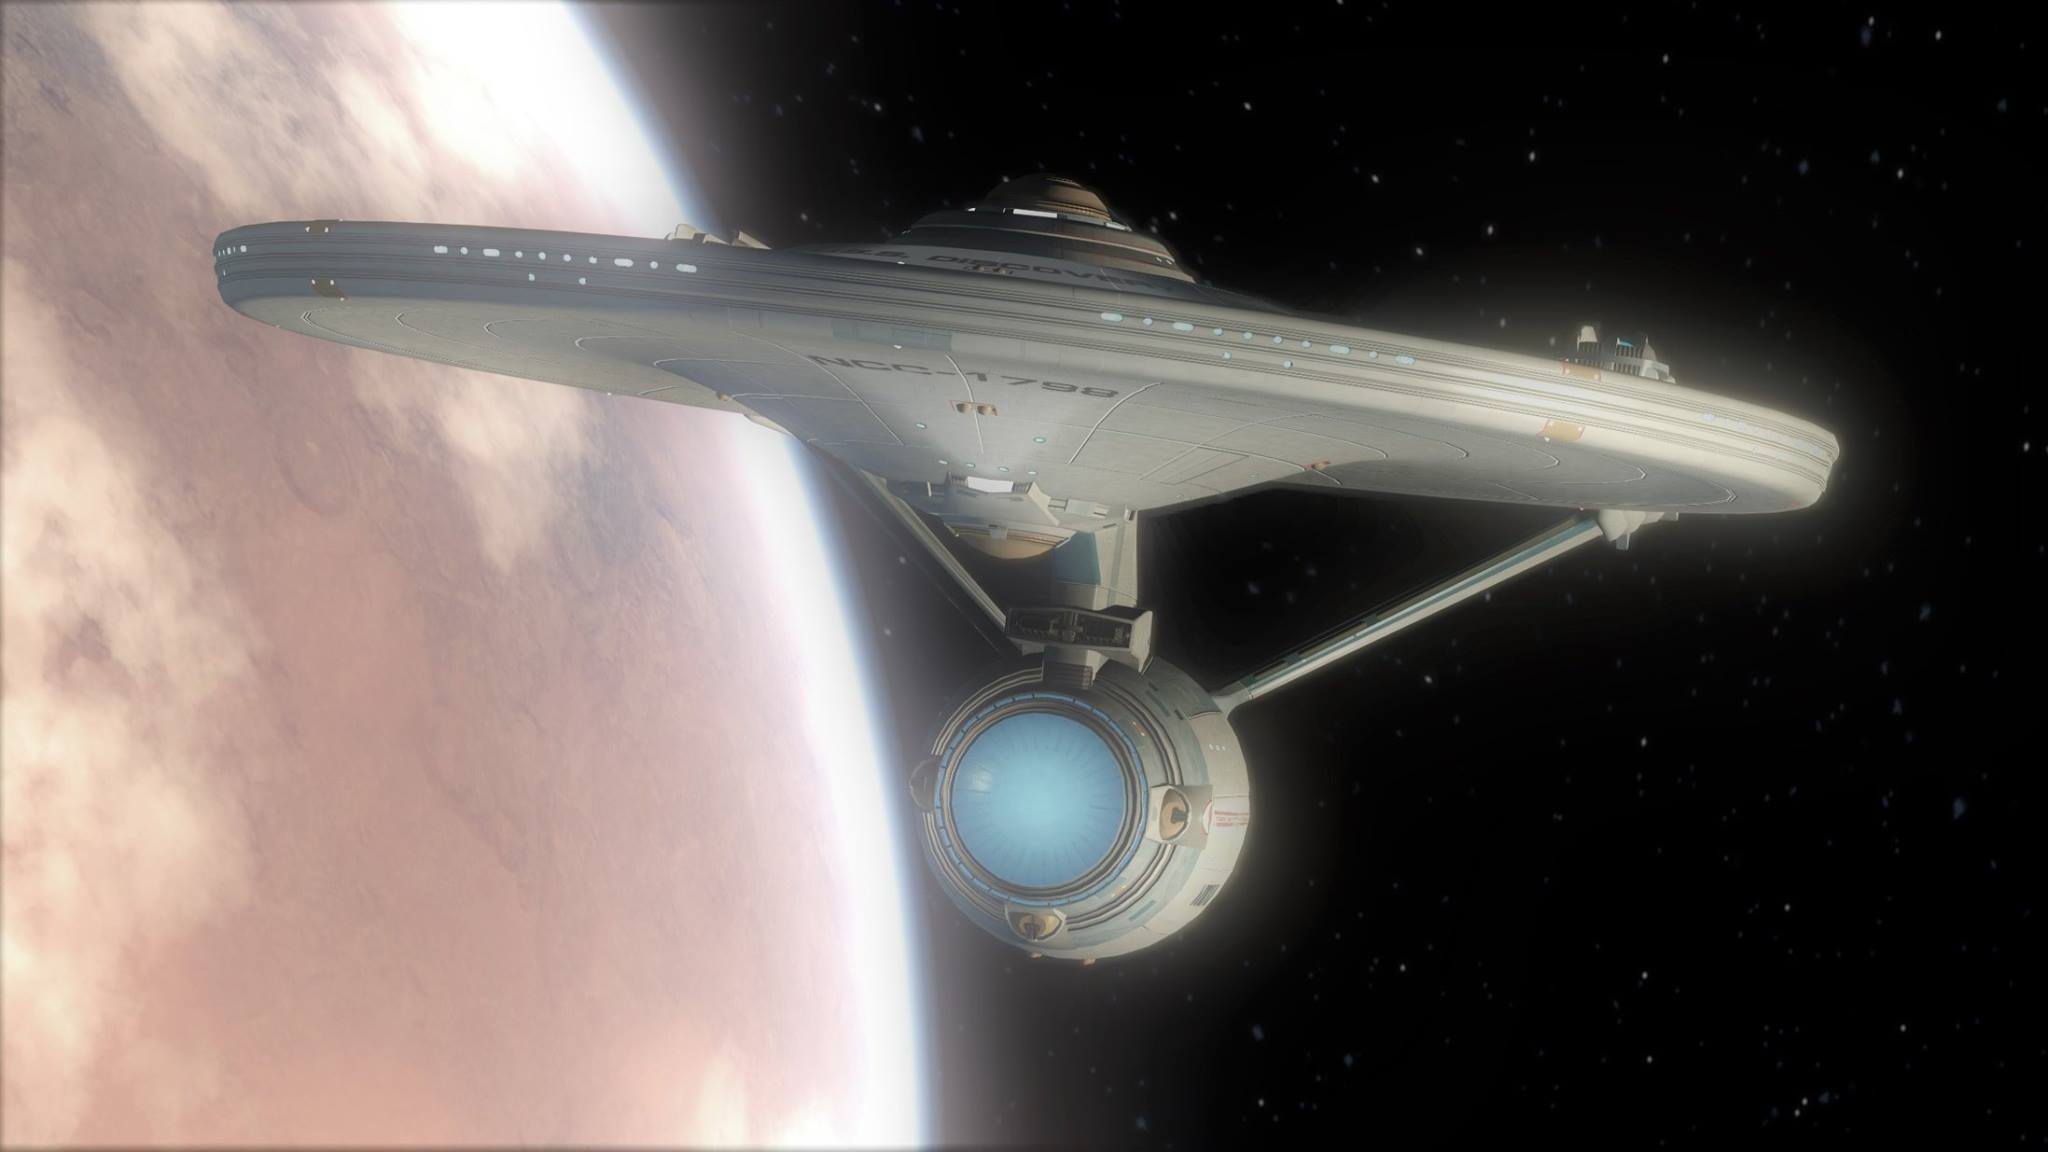 Uss-Discovery (4)